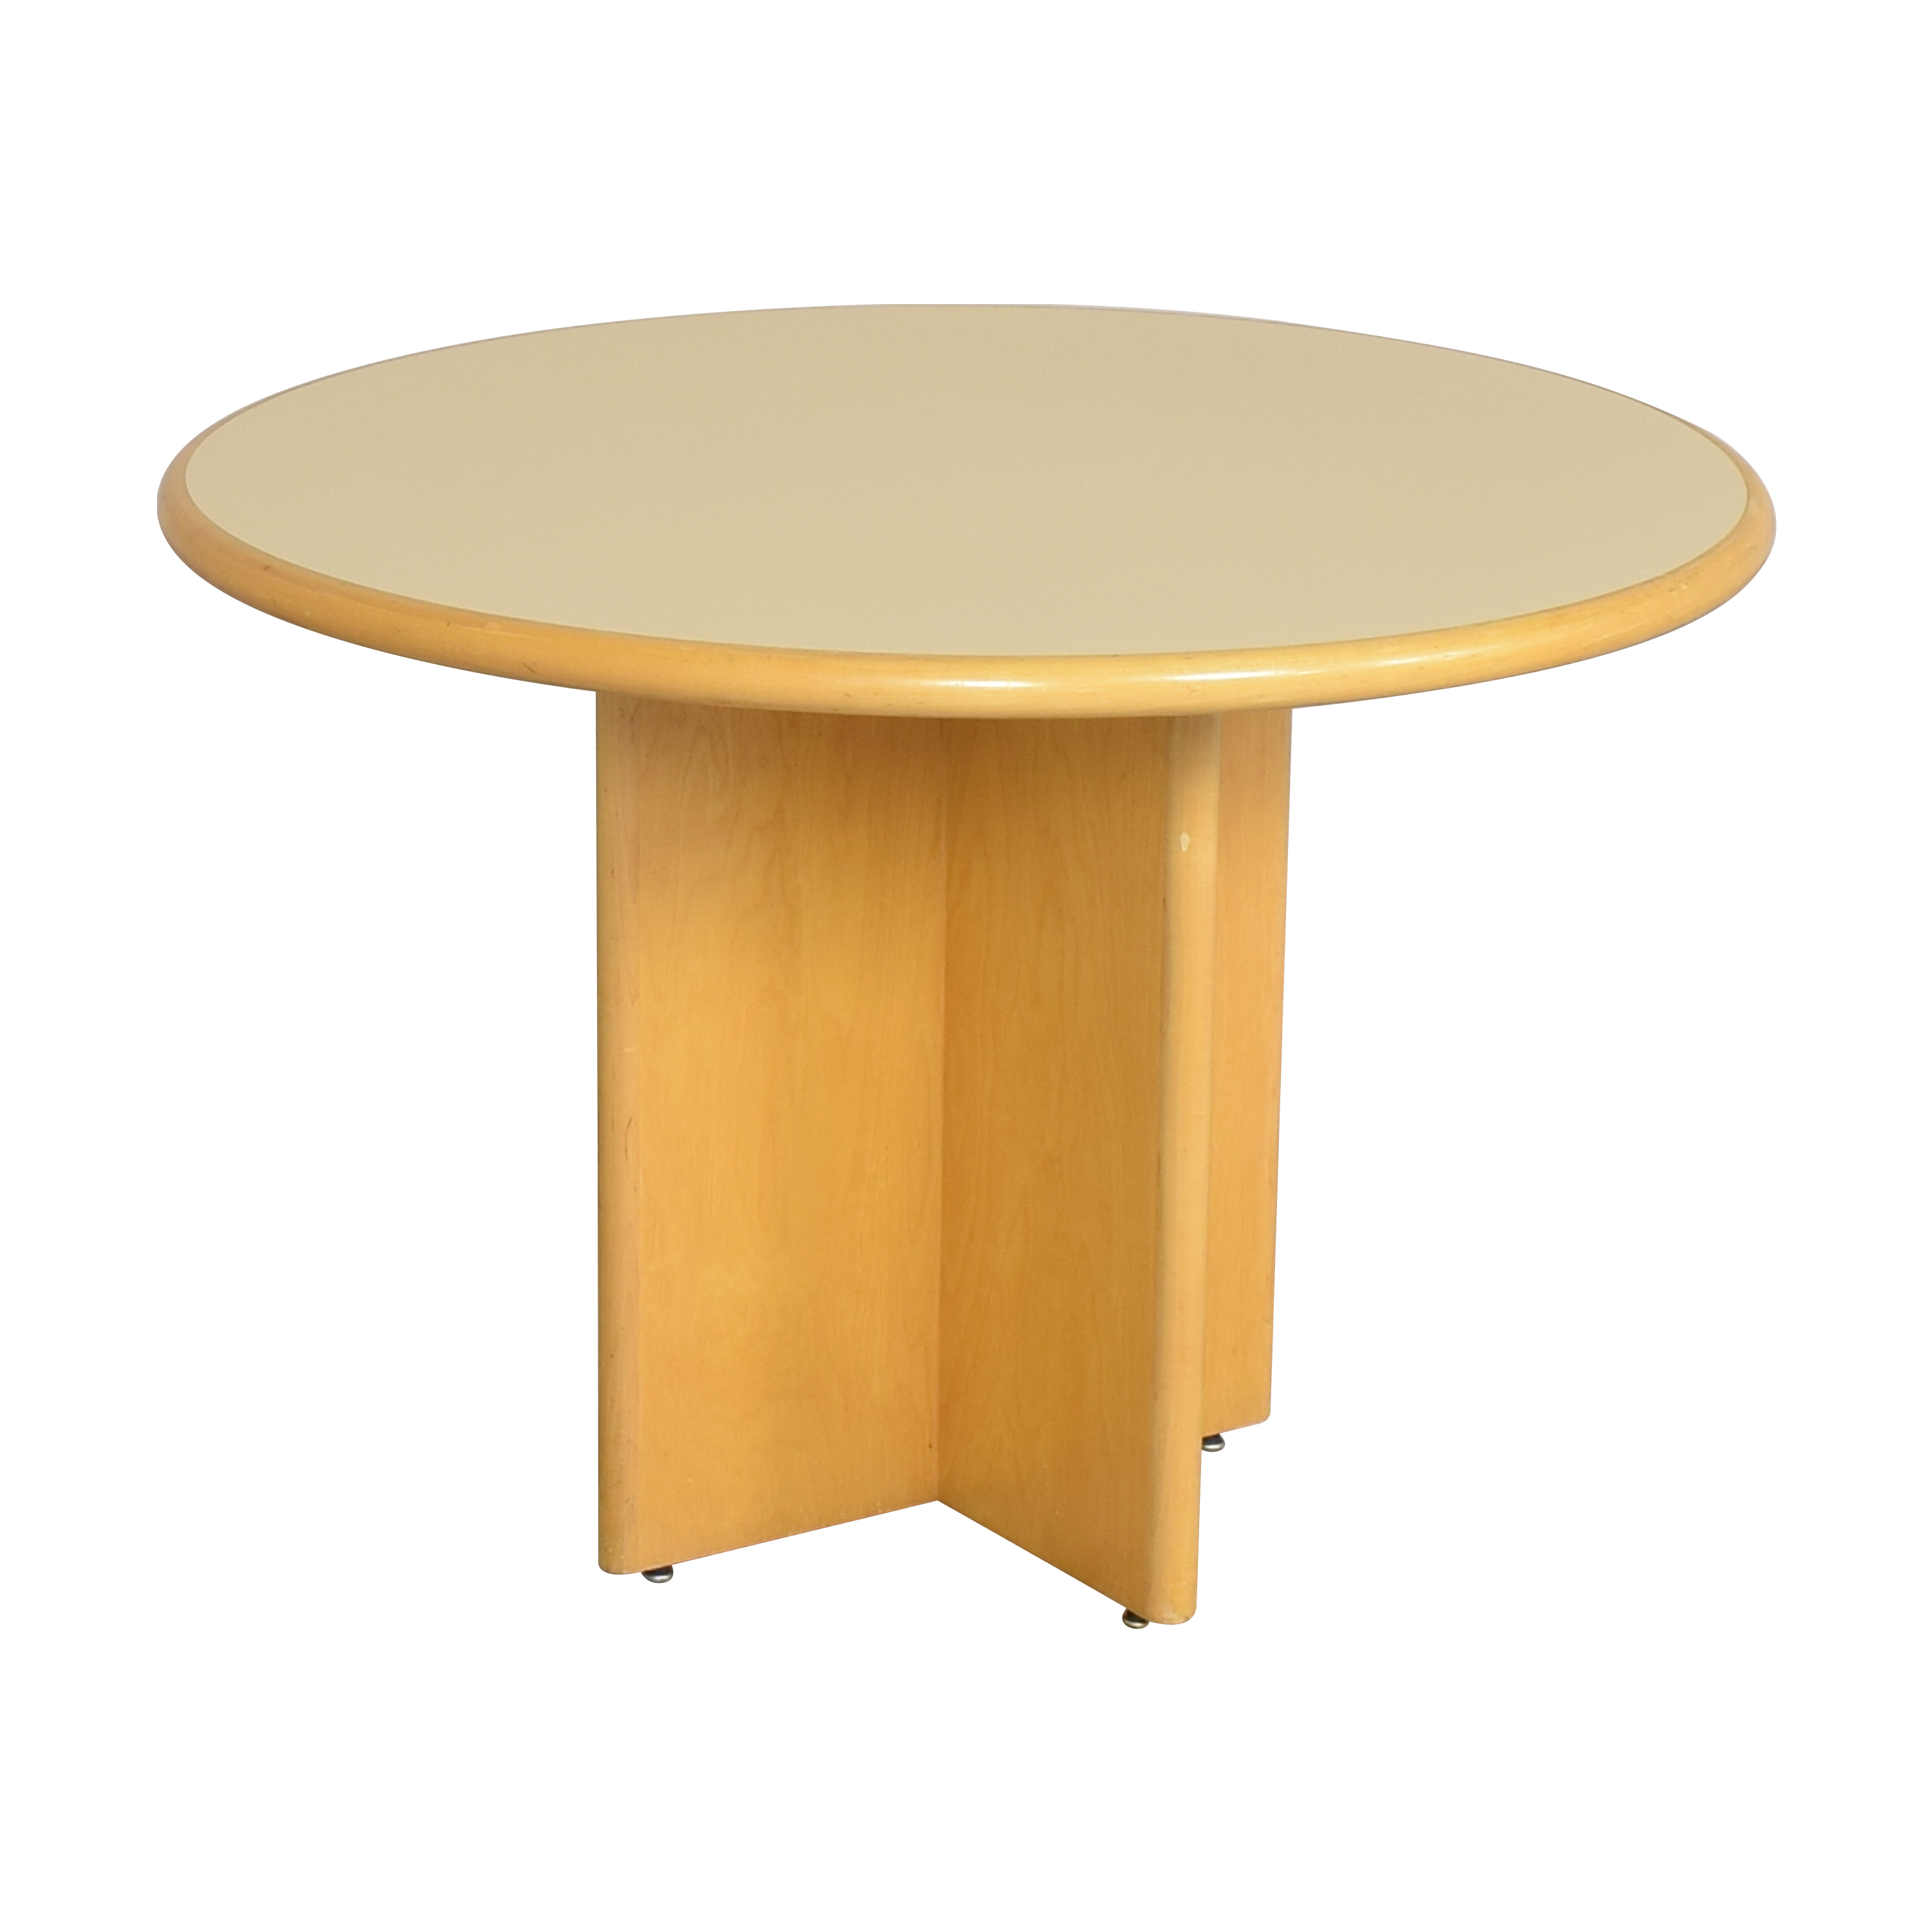 Custom Round Dining Table brown